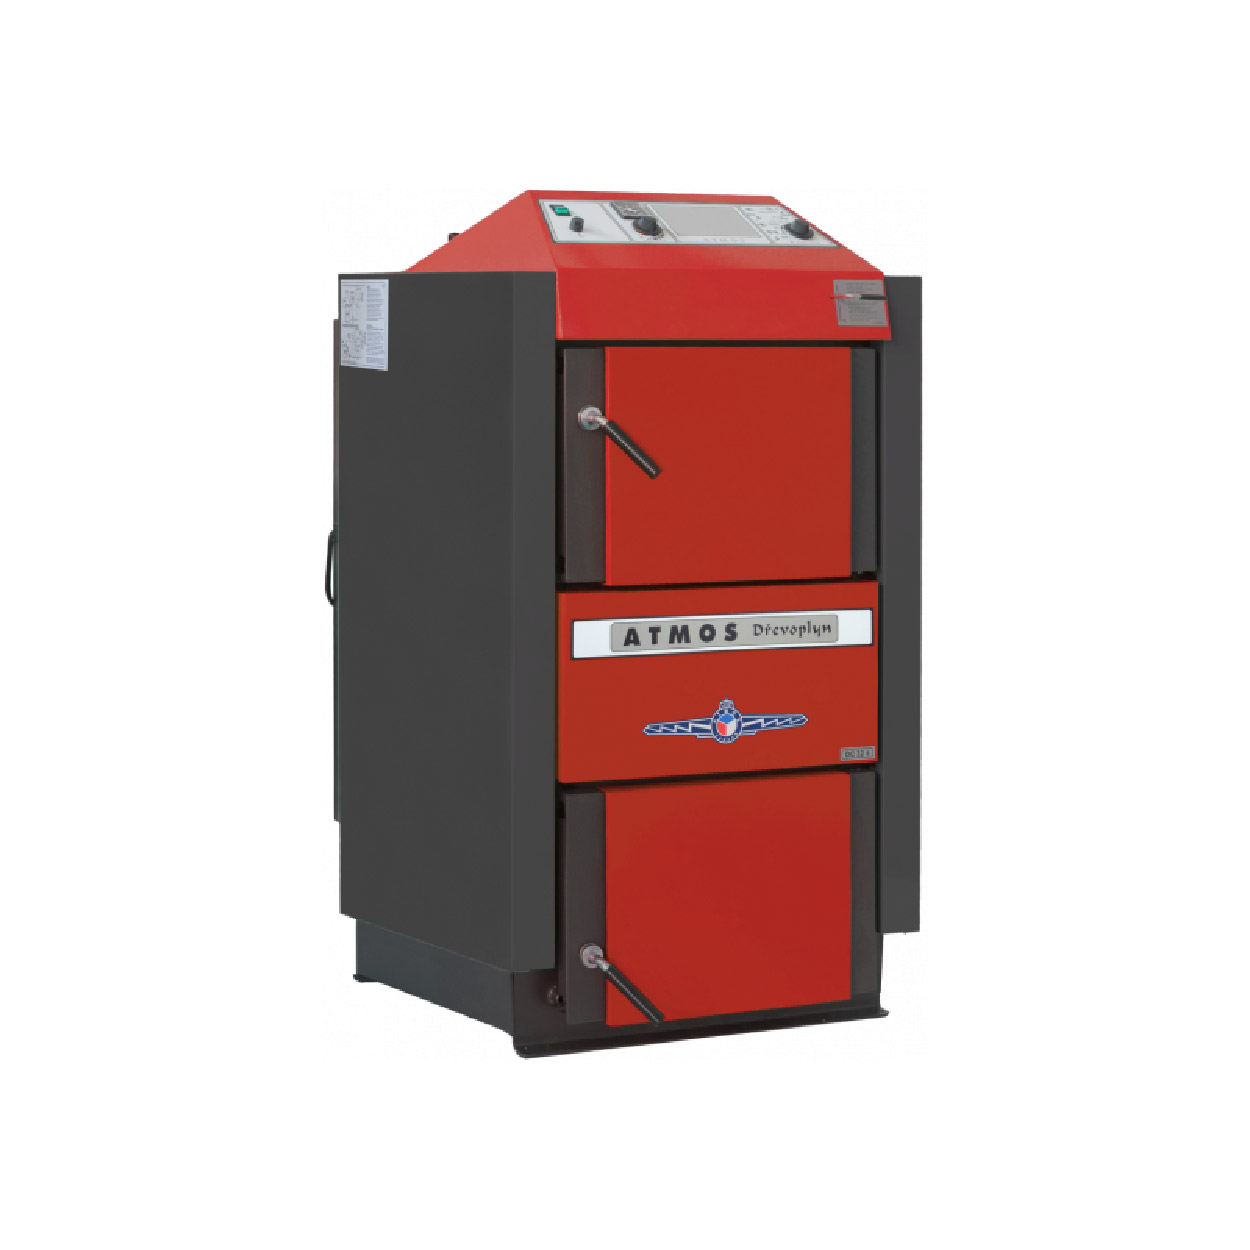 Centrala termica pe combustibil solid ATMOS DC30RS 32 kW fornello imagine